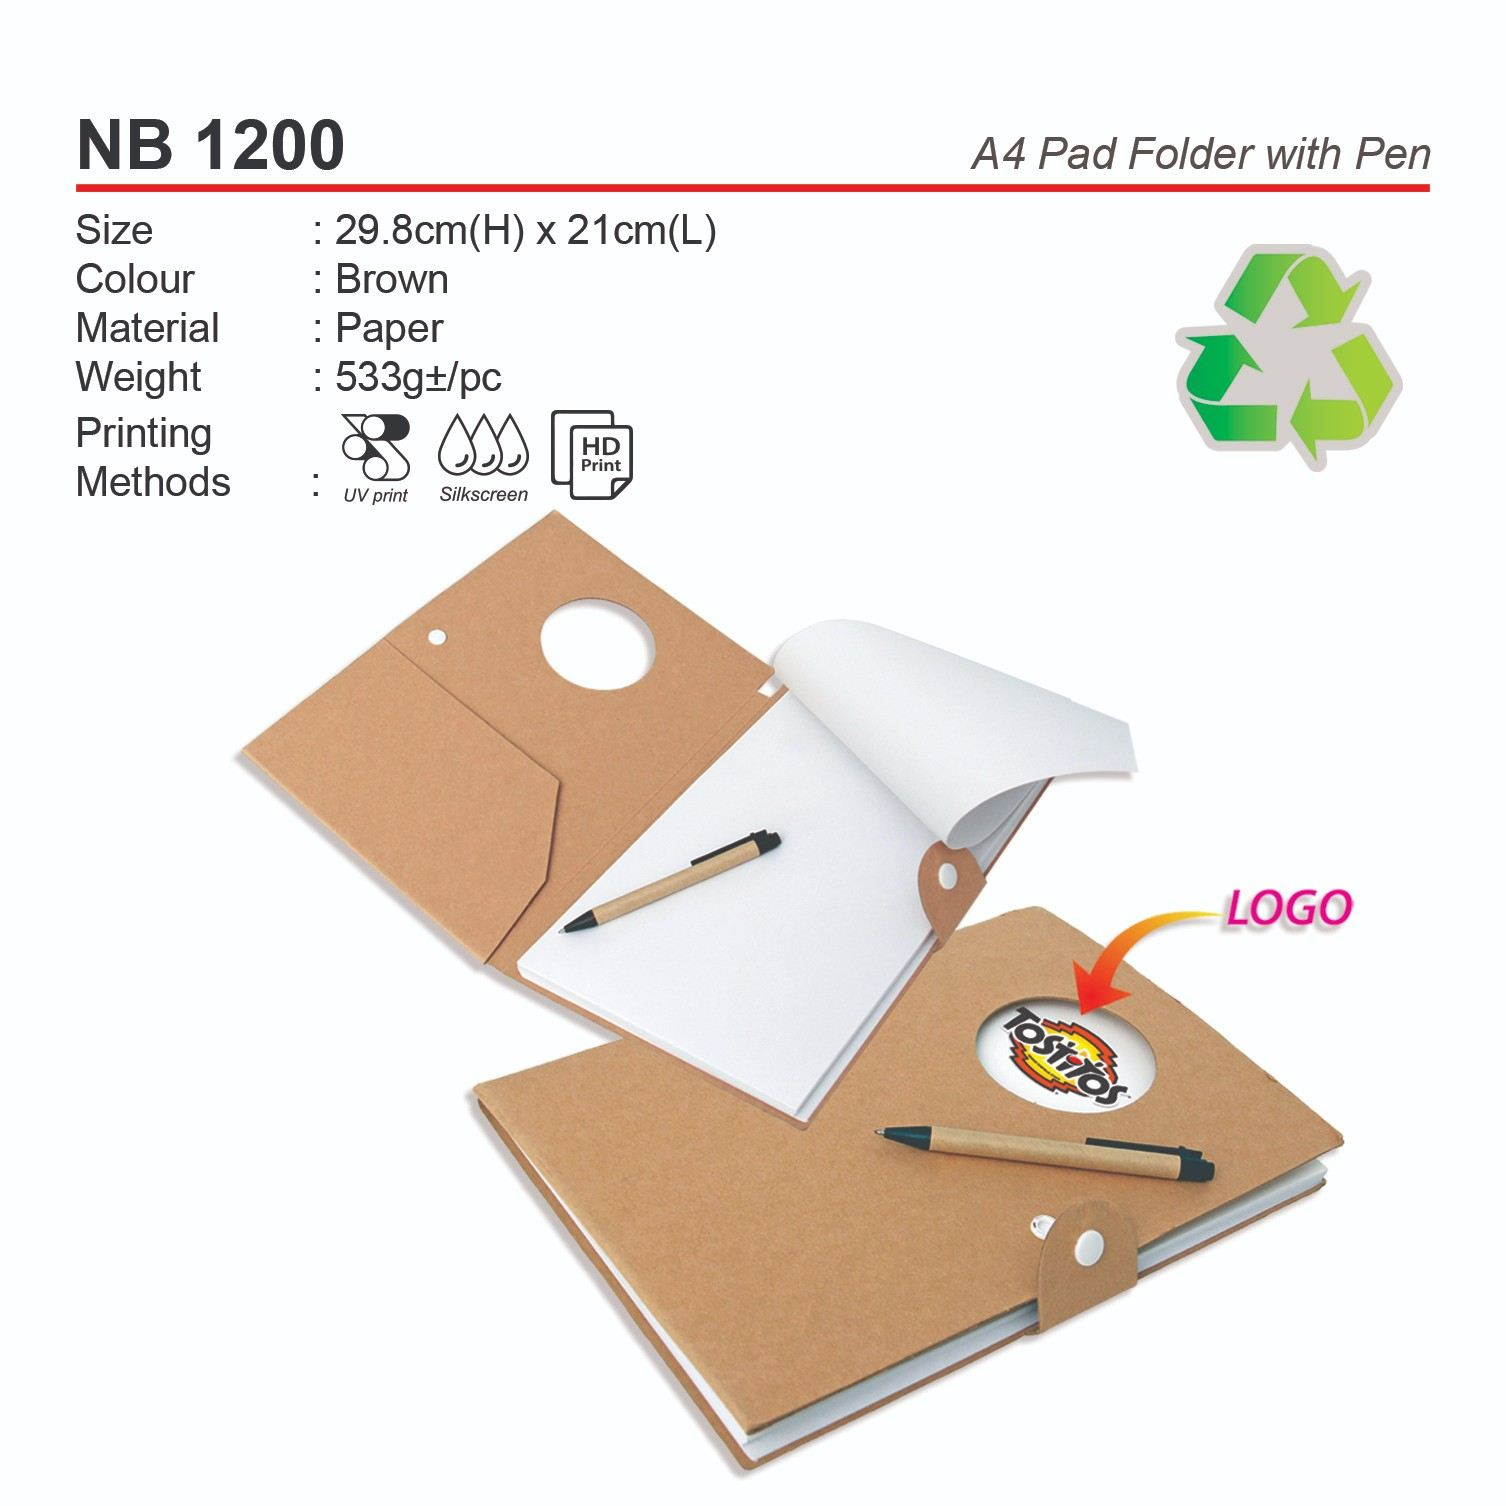 NB 1200 A4 Pad Folder with Pen